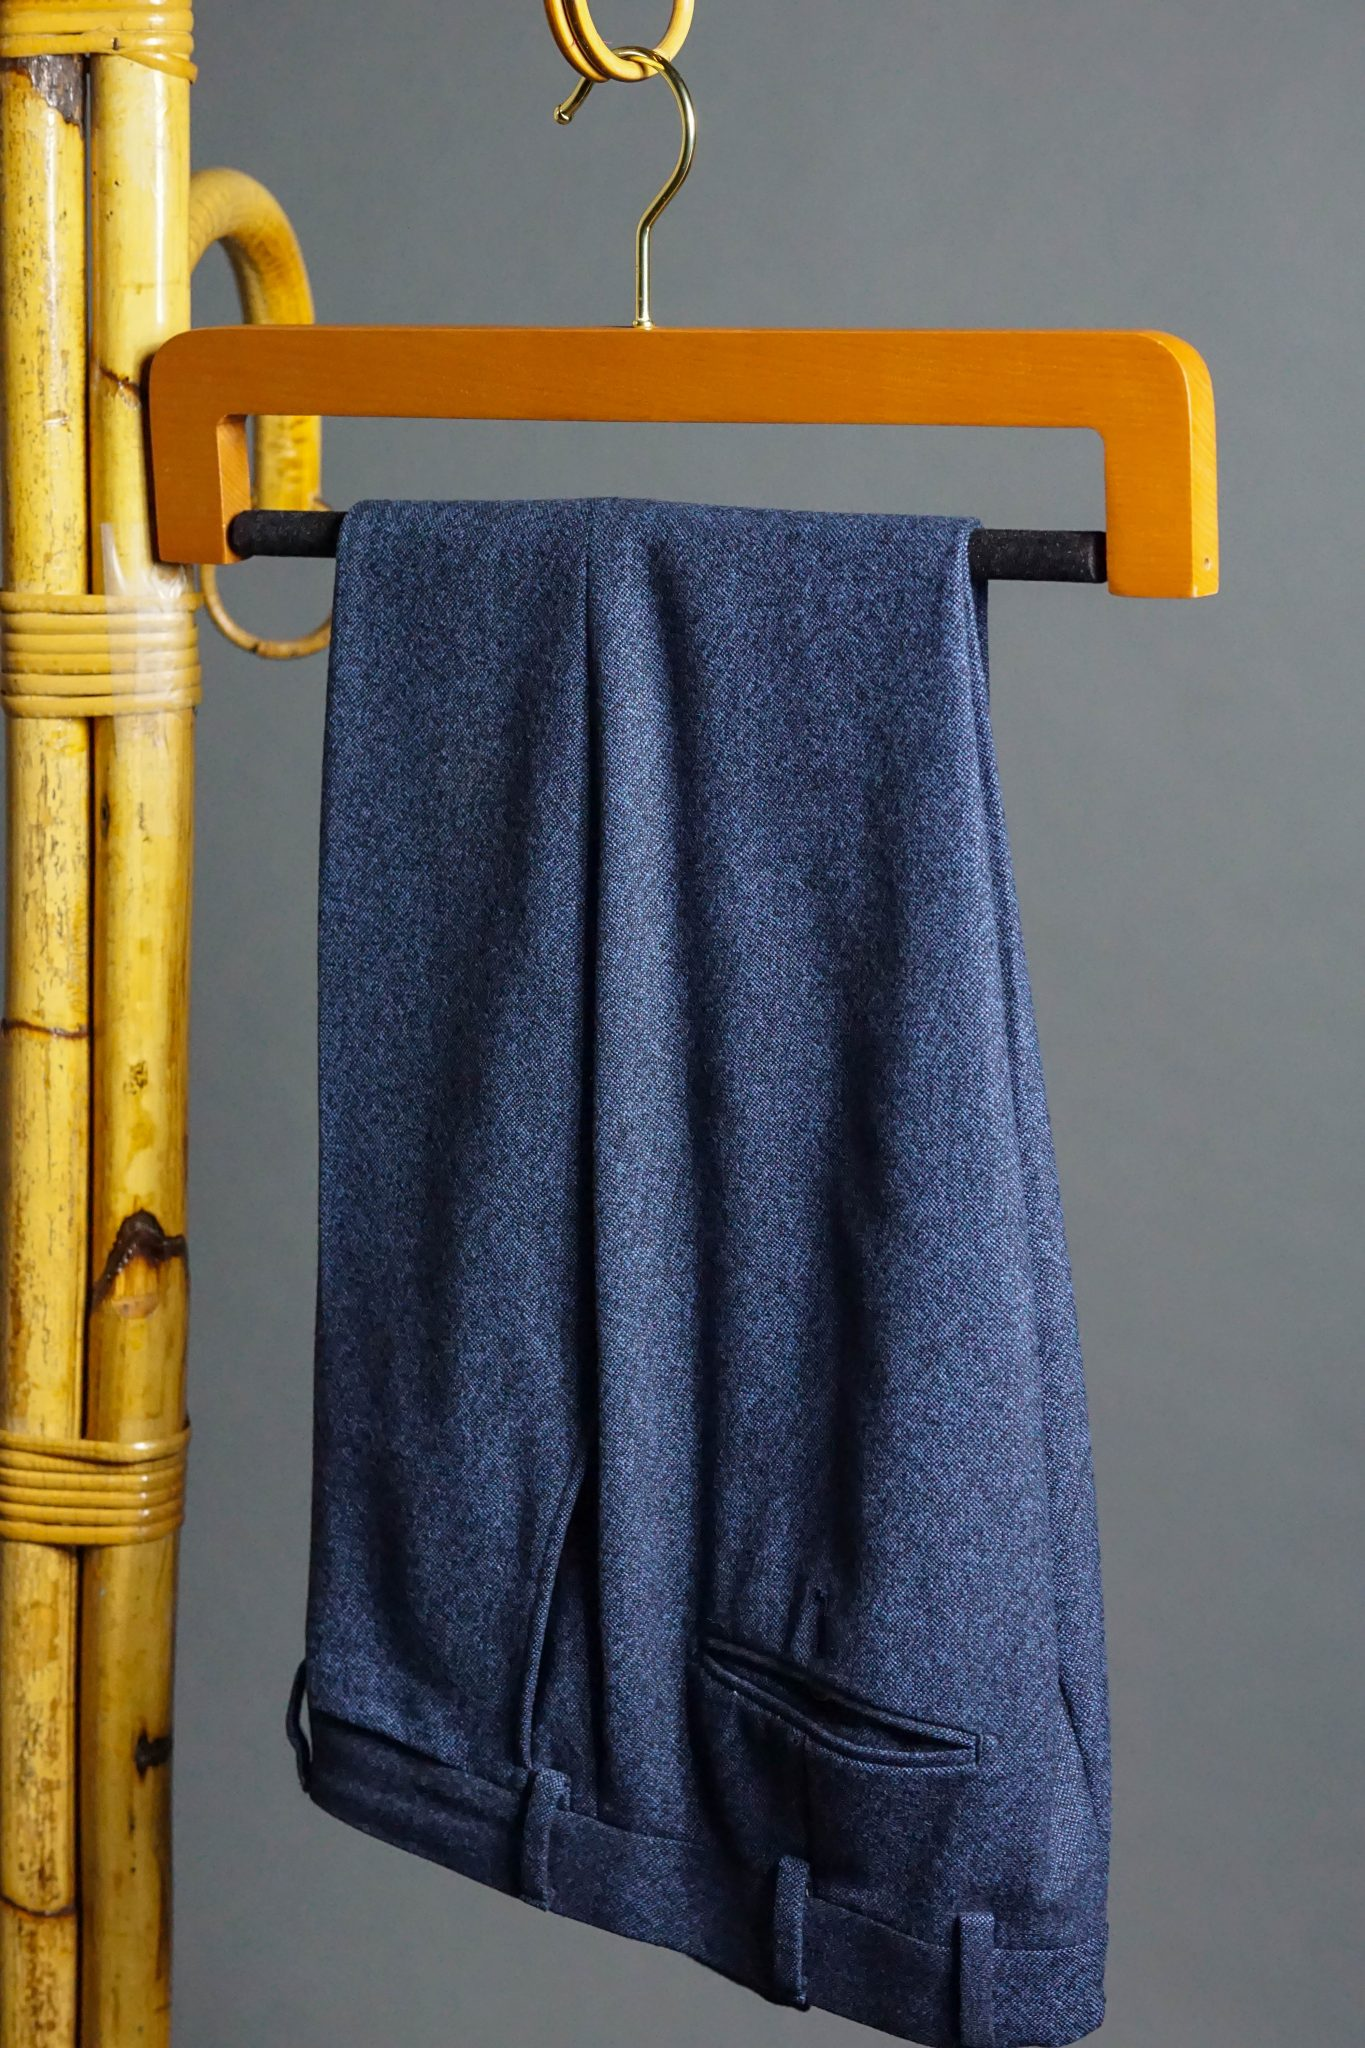 Butler-Luxury-Hangers-Review-suit-supply-blue-pants-trousers